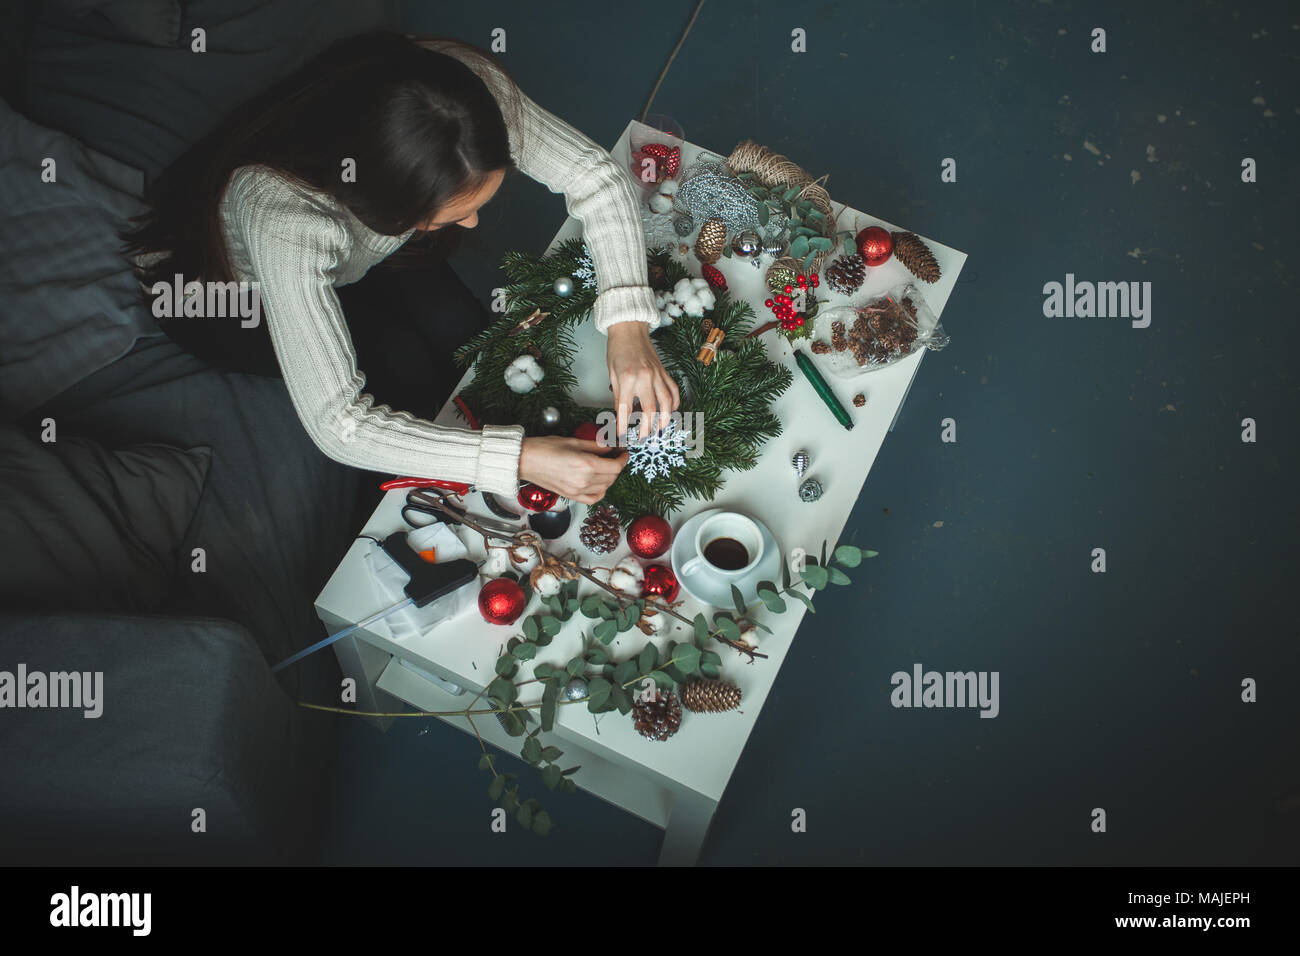 florist woman making christmas decorations at home office desk